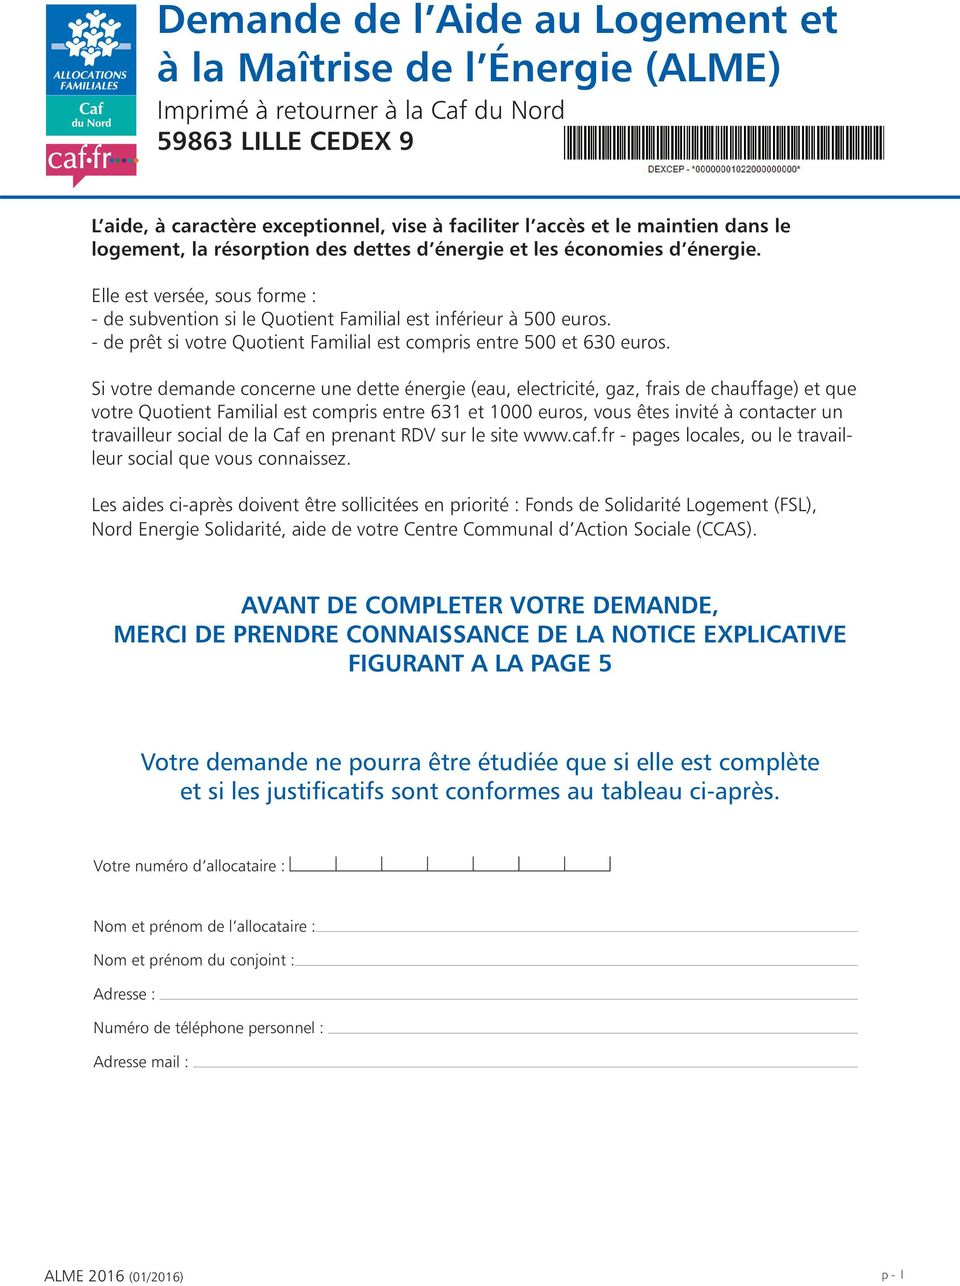 Mail Caf Aide Logement